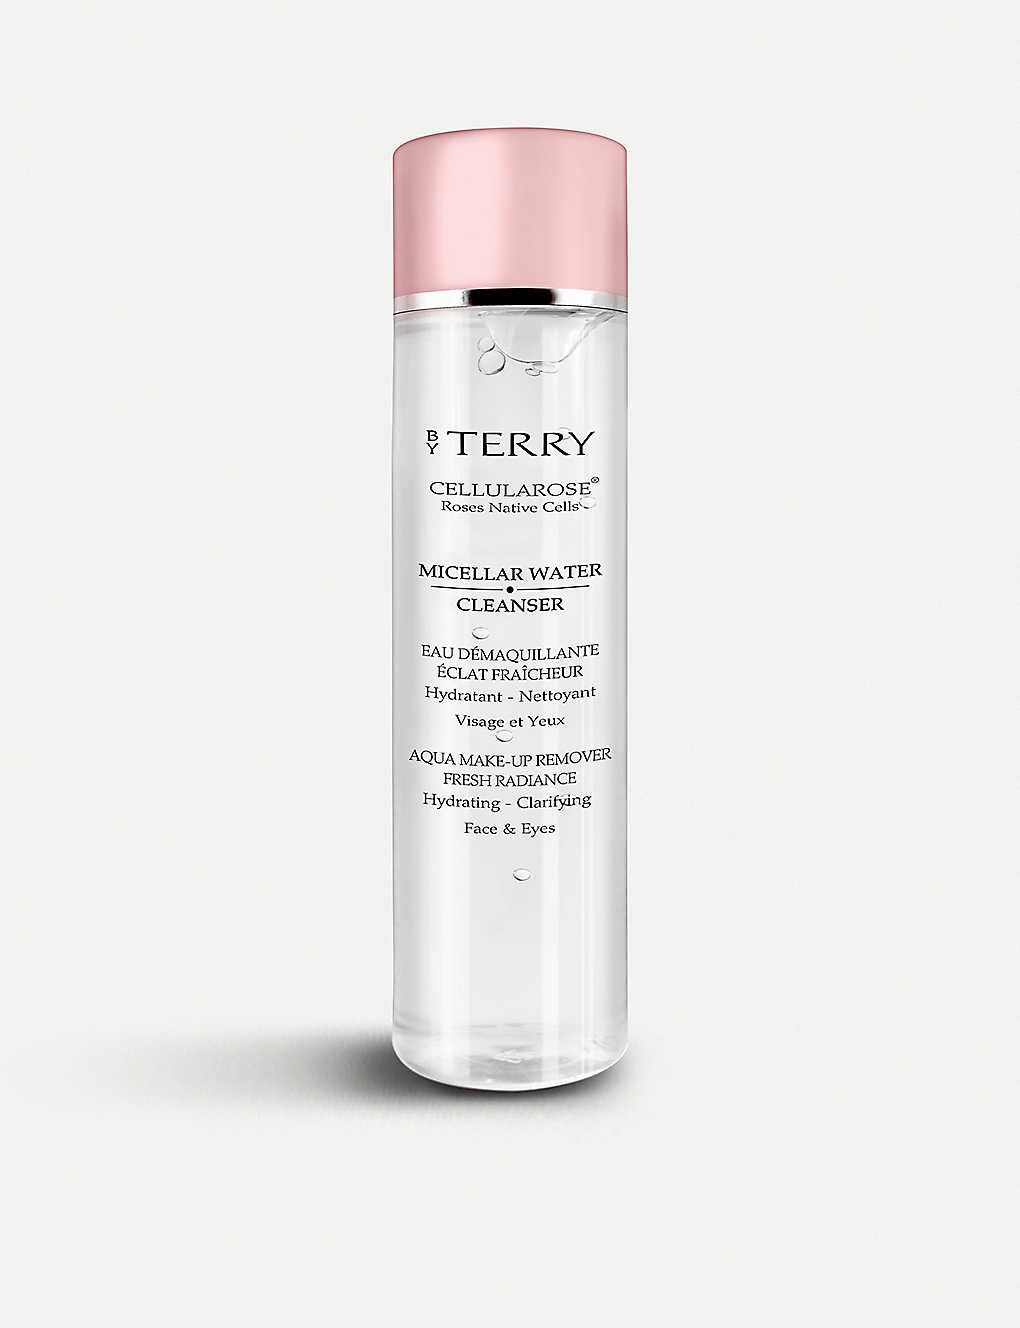 BY TERRY: Cellularose® Micellar Water Cleanser 150ml